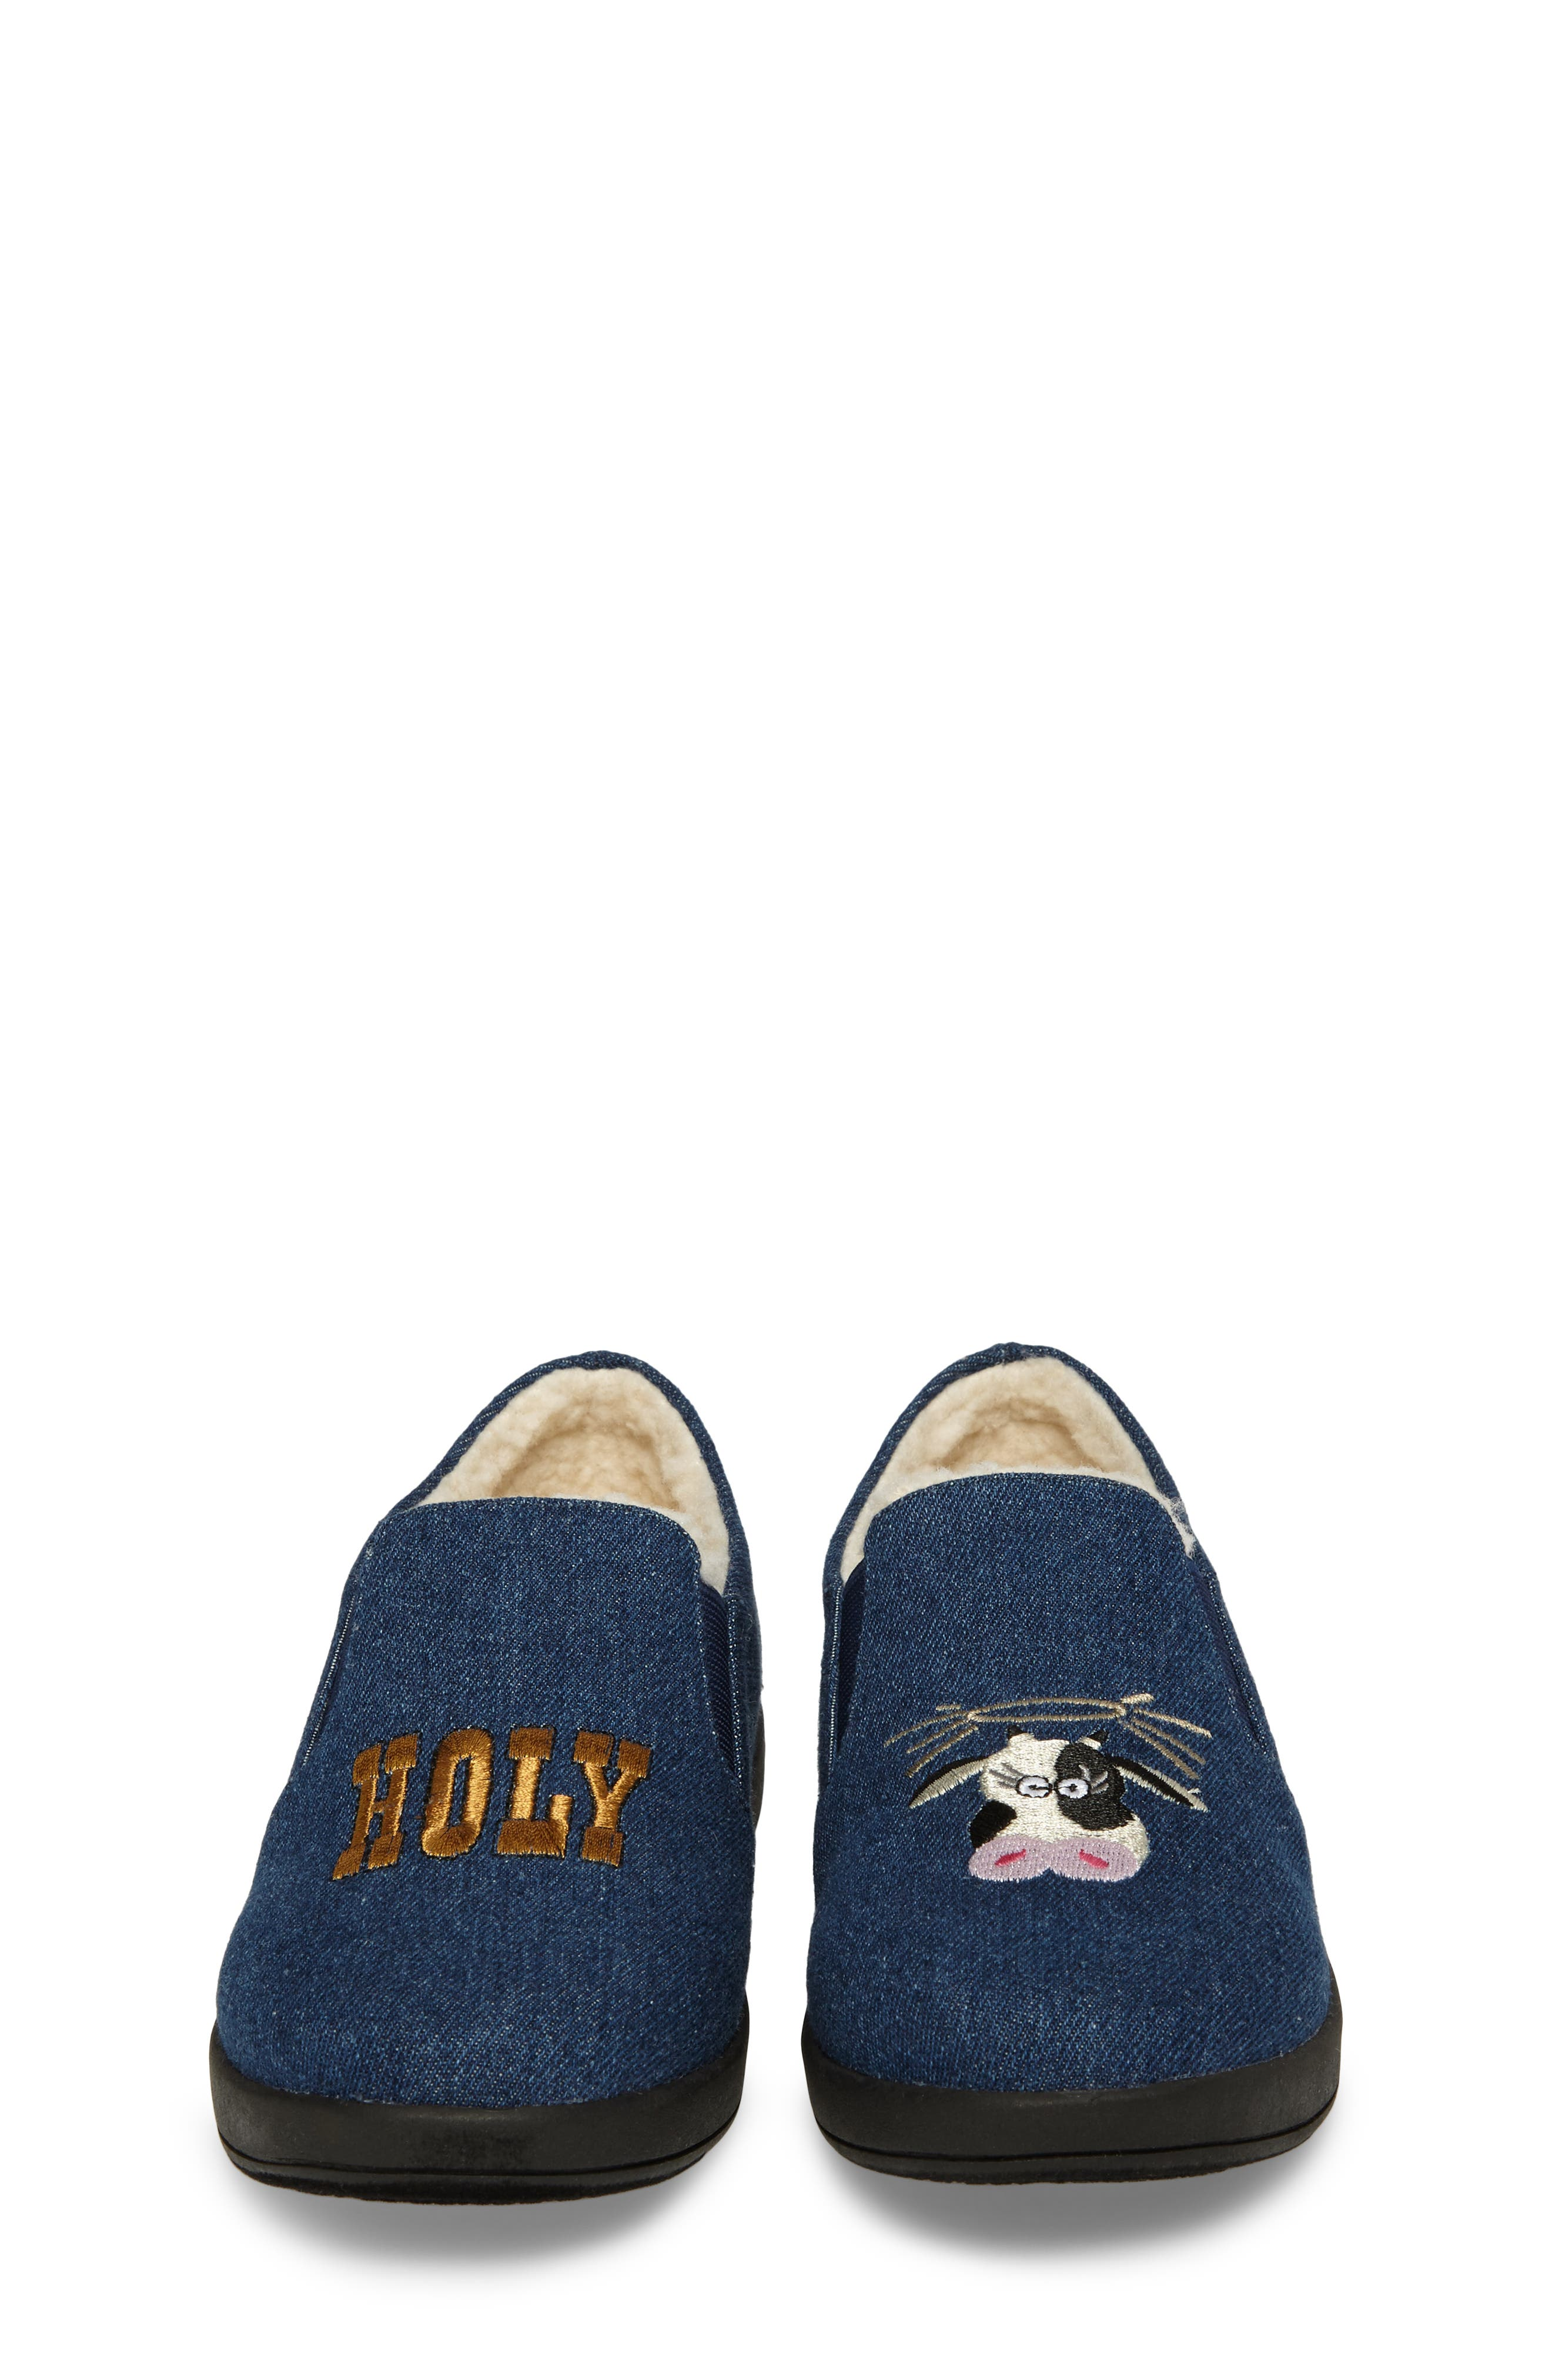 Cynthia Tala Holy Cow Embroidered Slippers,                             Alternate thumbnail 4, color,                             400